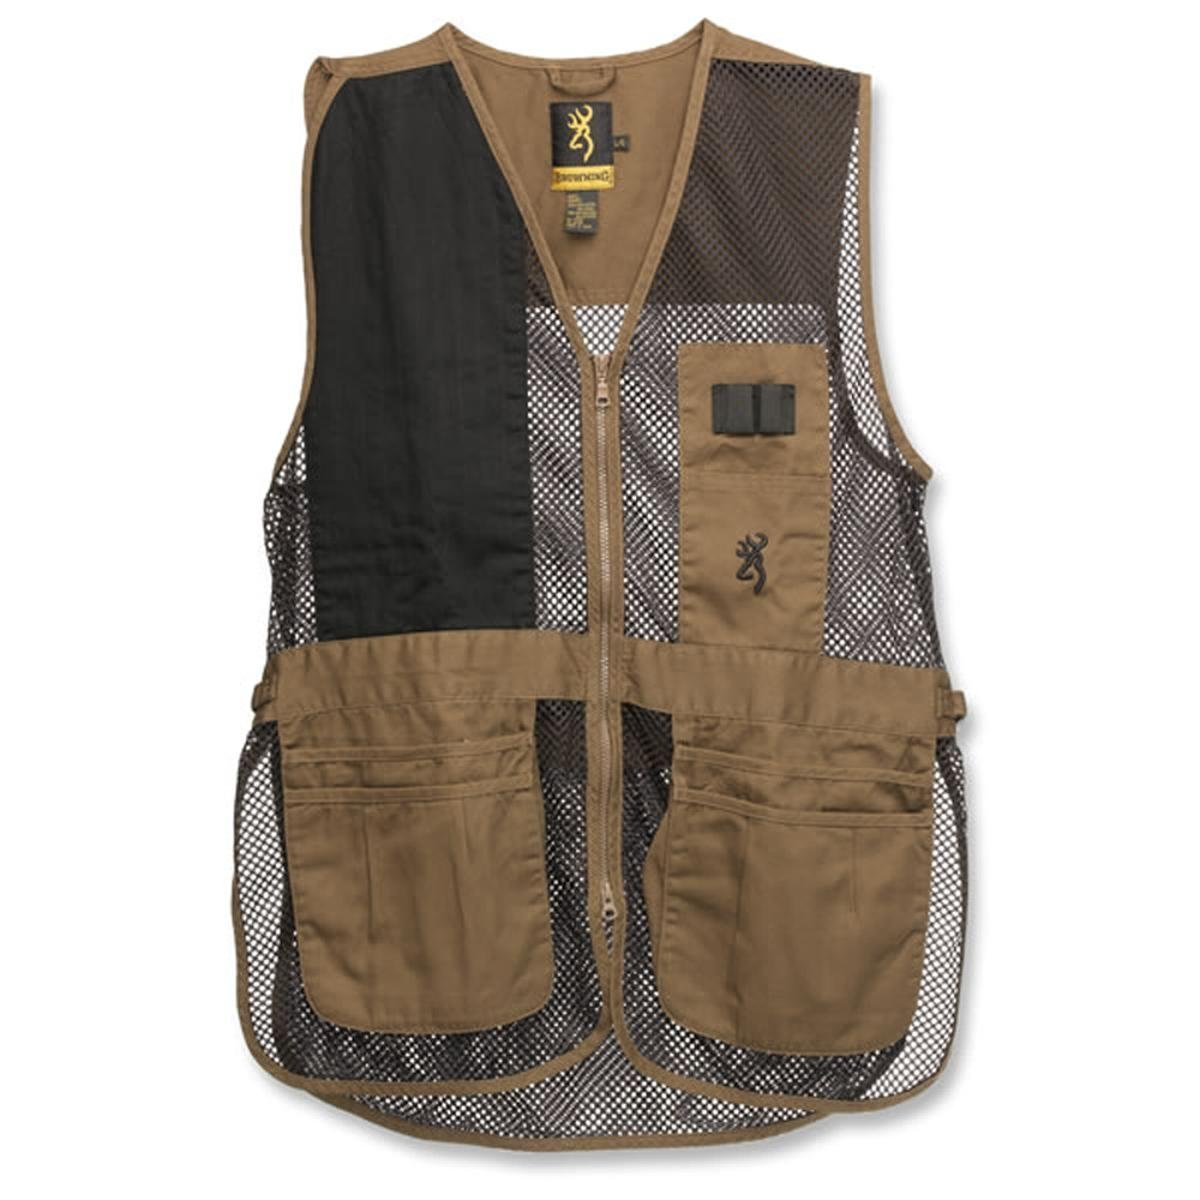 Browning, Trapper Creek Vest, Clay/Black, Medium